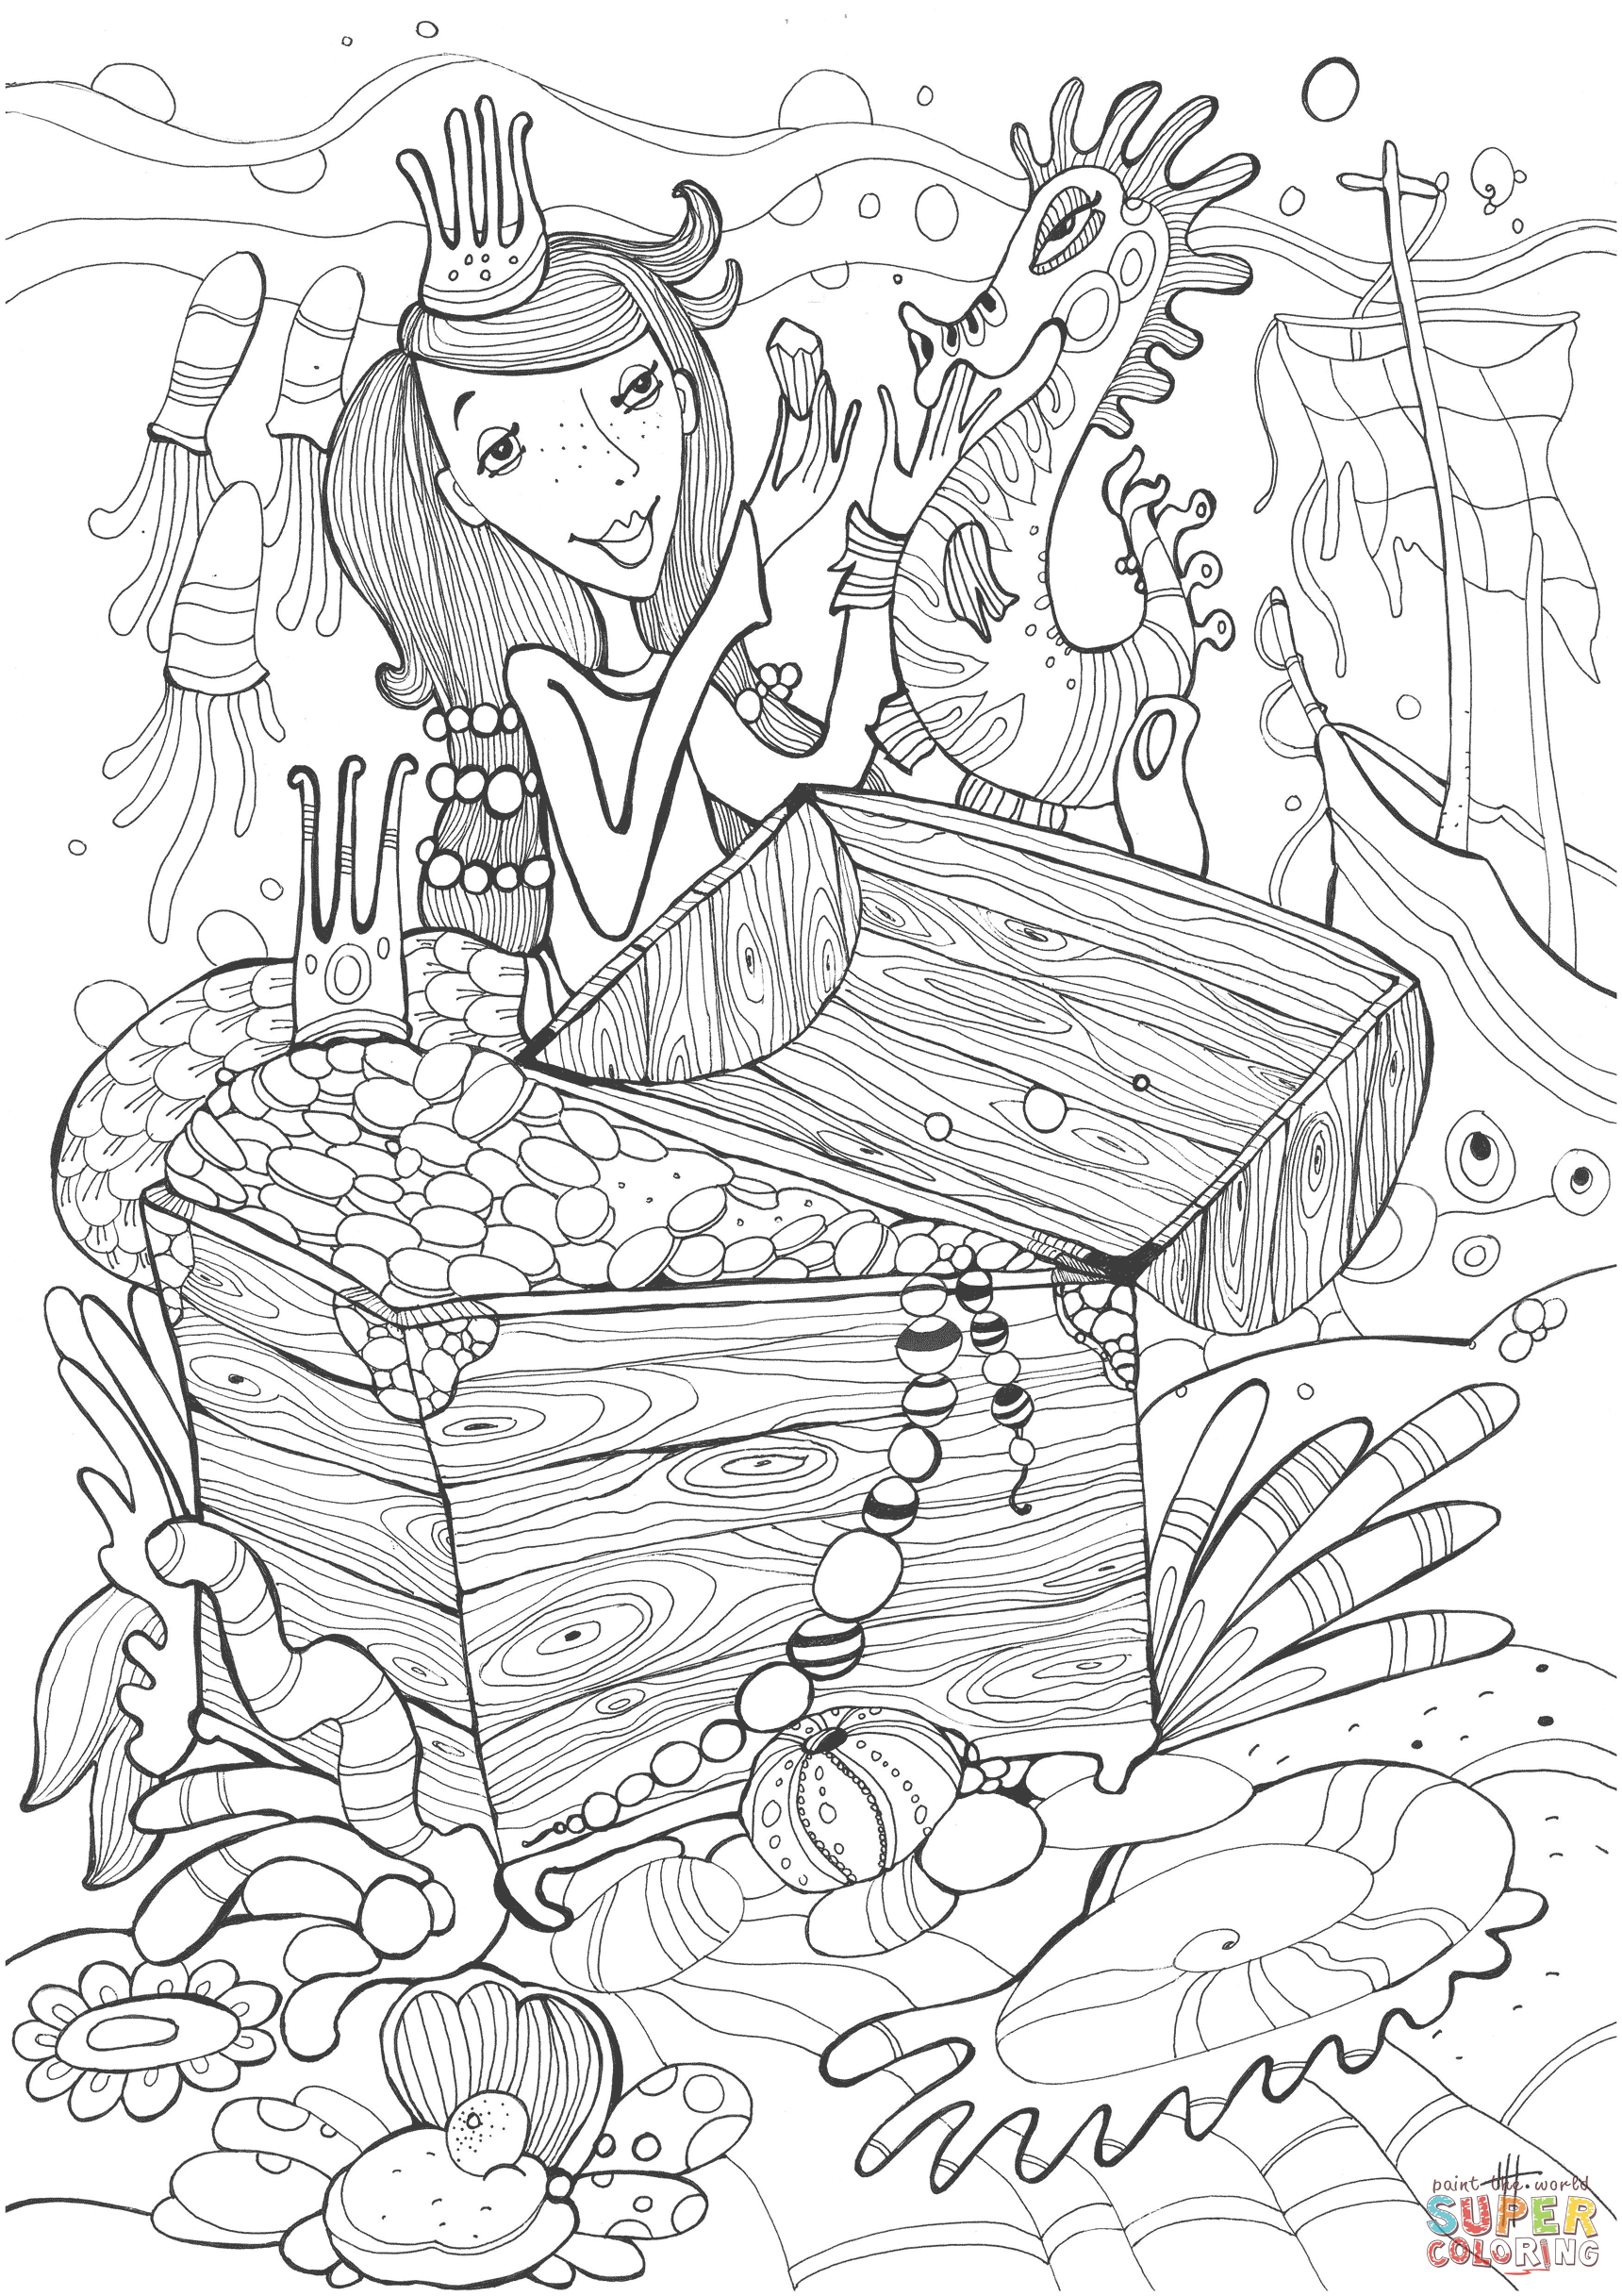 Sea Horse And Princess Mermaid Found Treasure Coloring Book